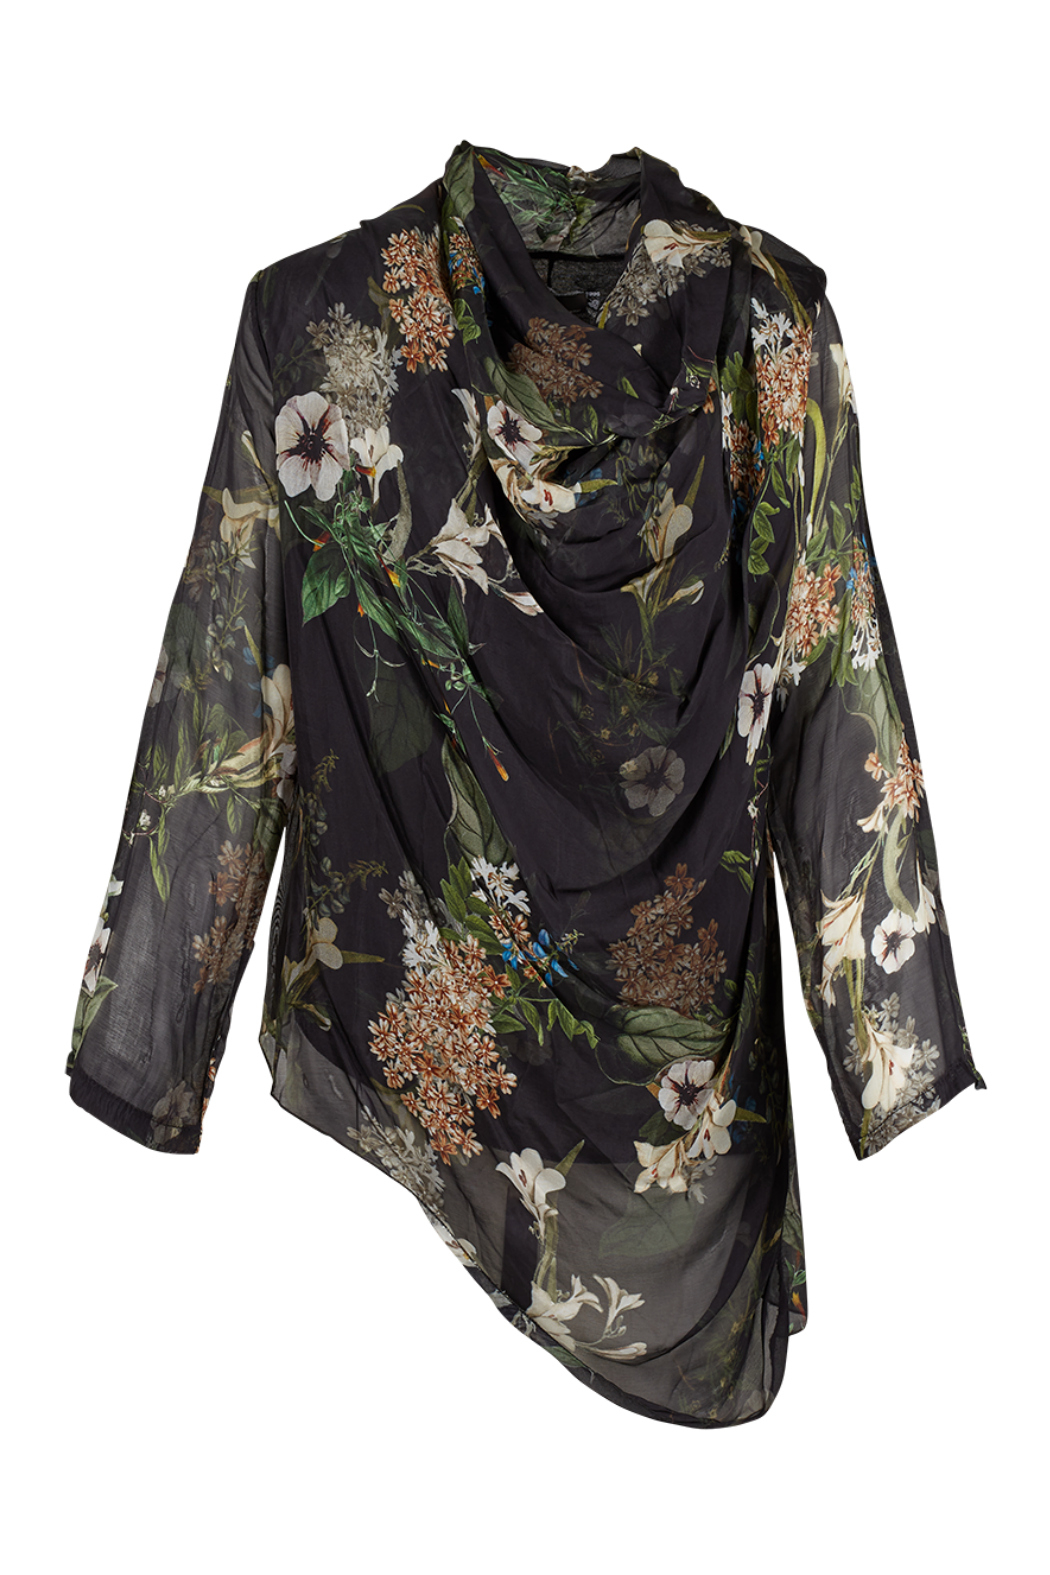 M made in Italy Floral Cowl Neck Blouse w Asymmetrical Hemline - Main Image